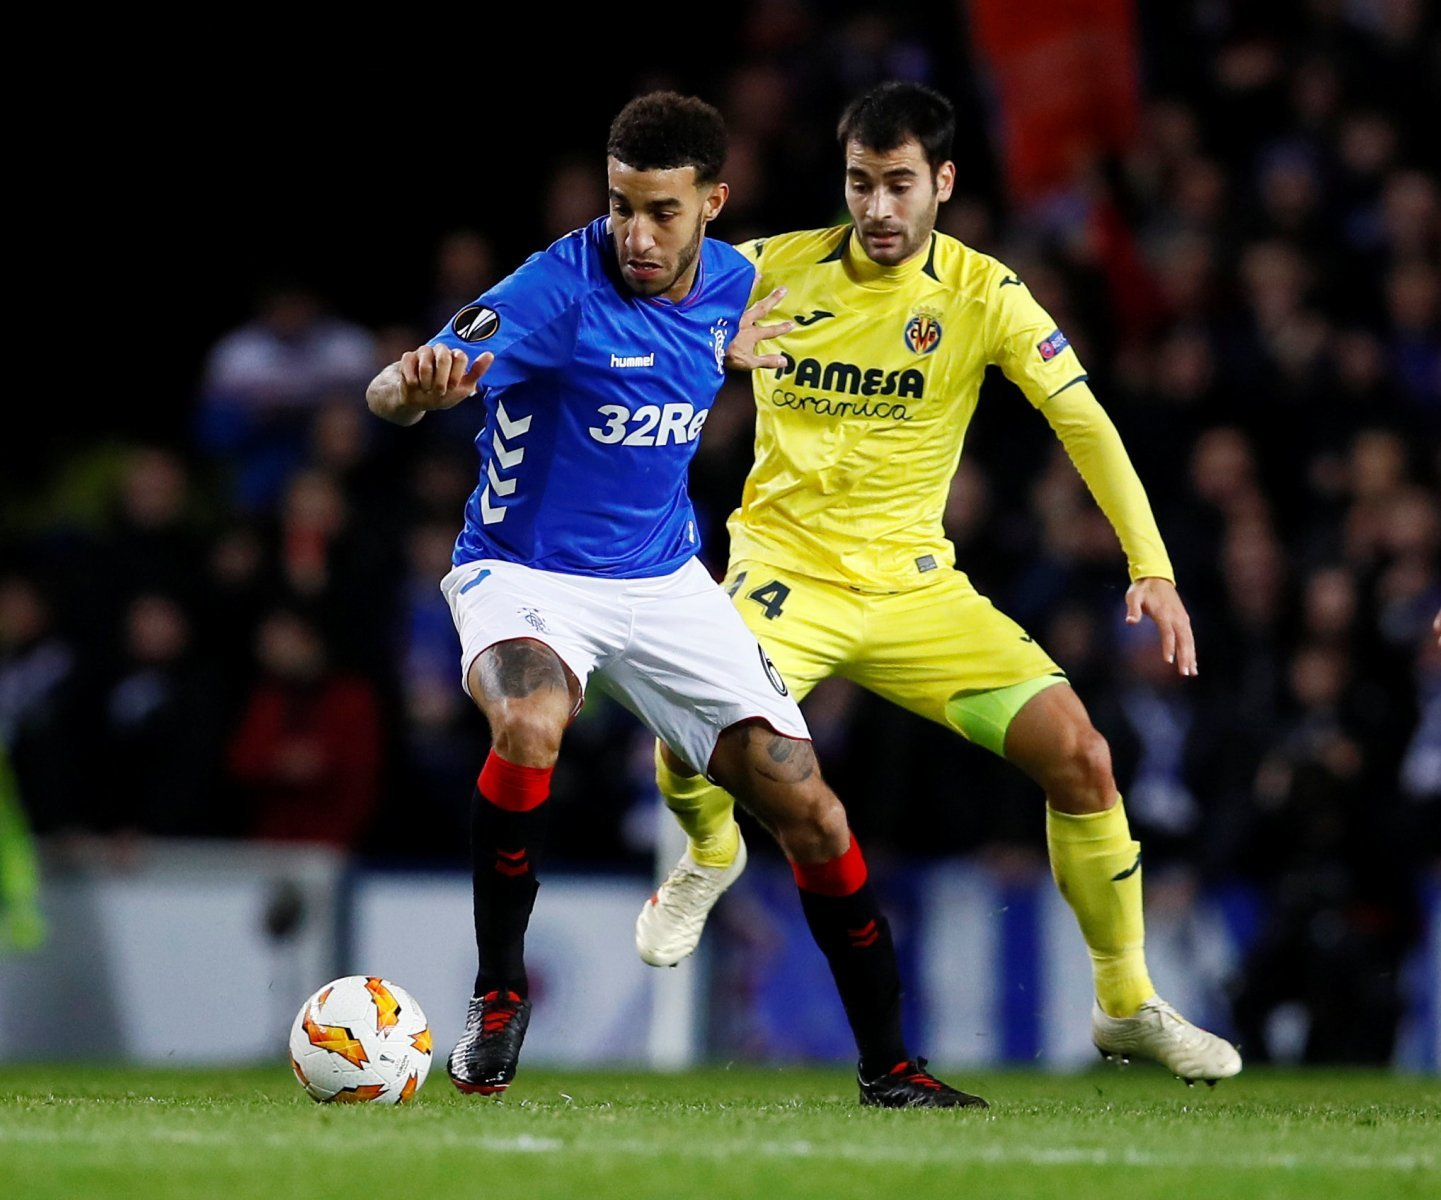 Rangers fans take to Twitter to slam Goldson after costly penalty